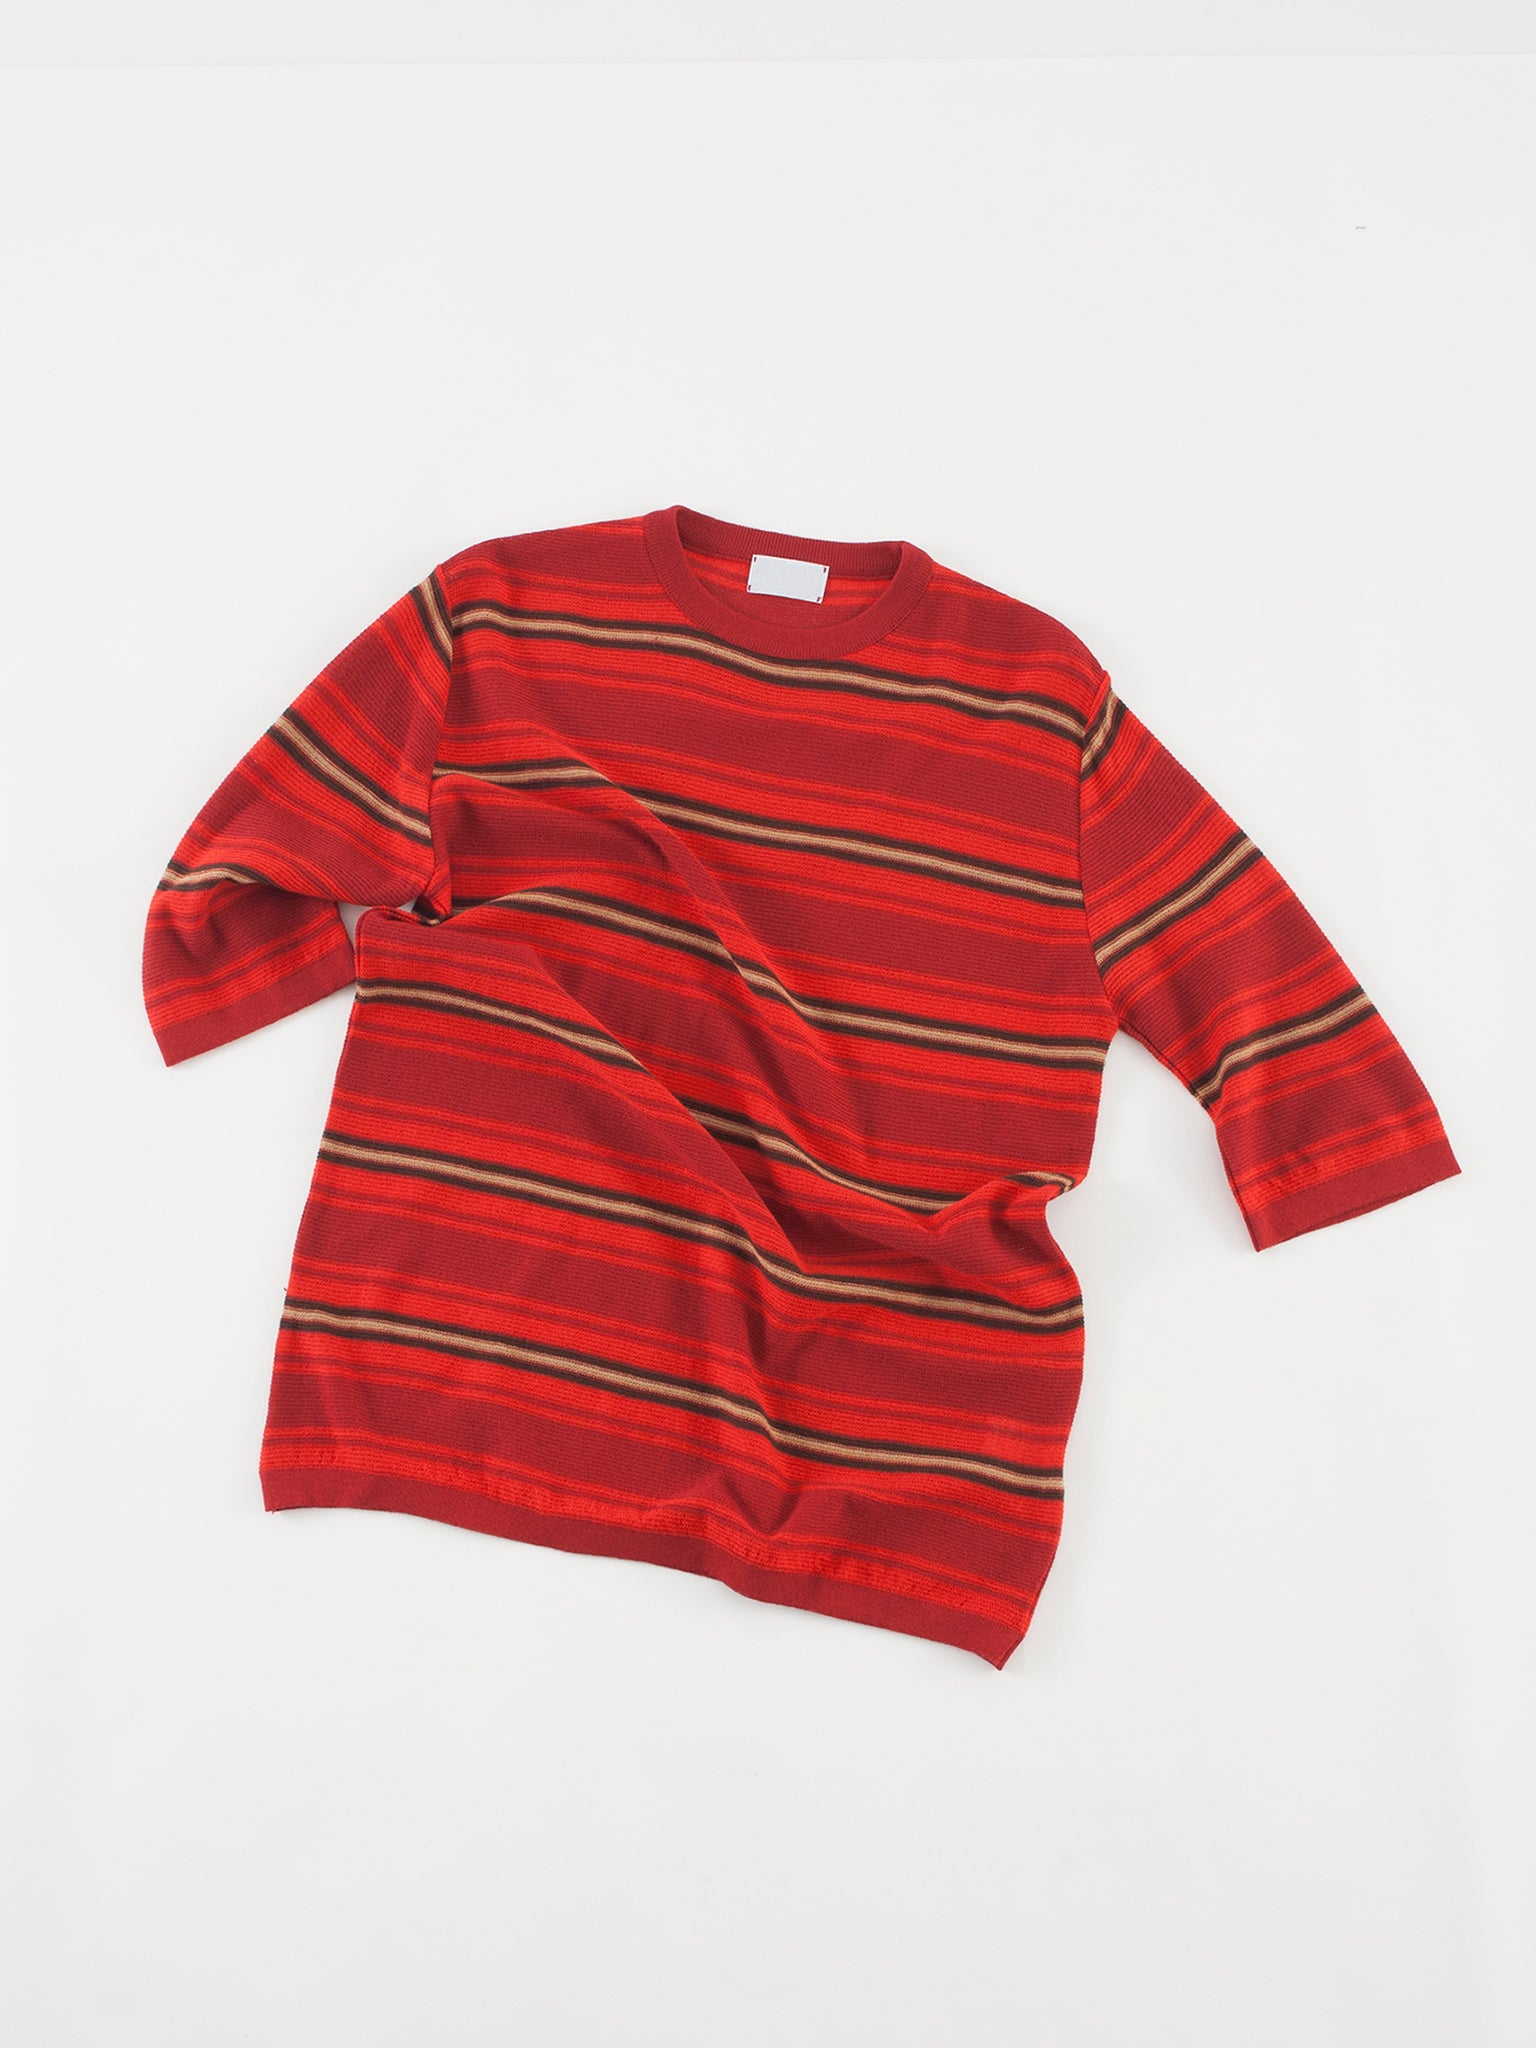 Knit T-shirt, red-bordeaux stripes